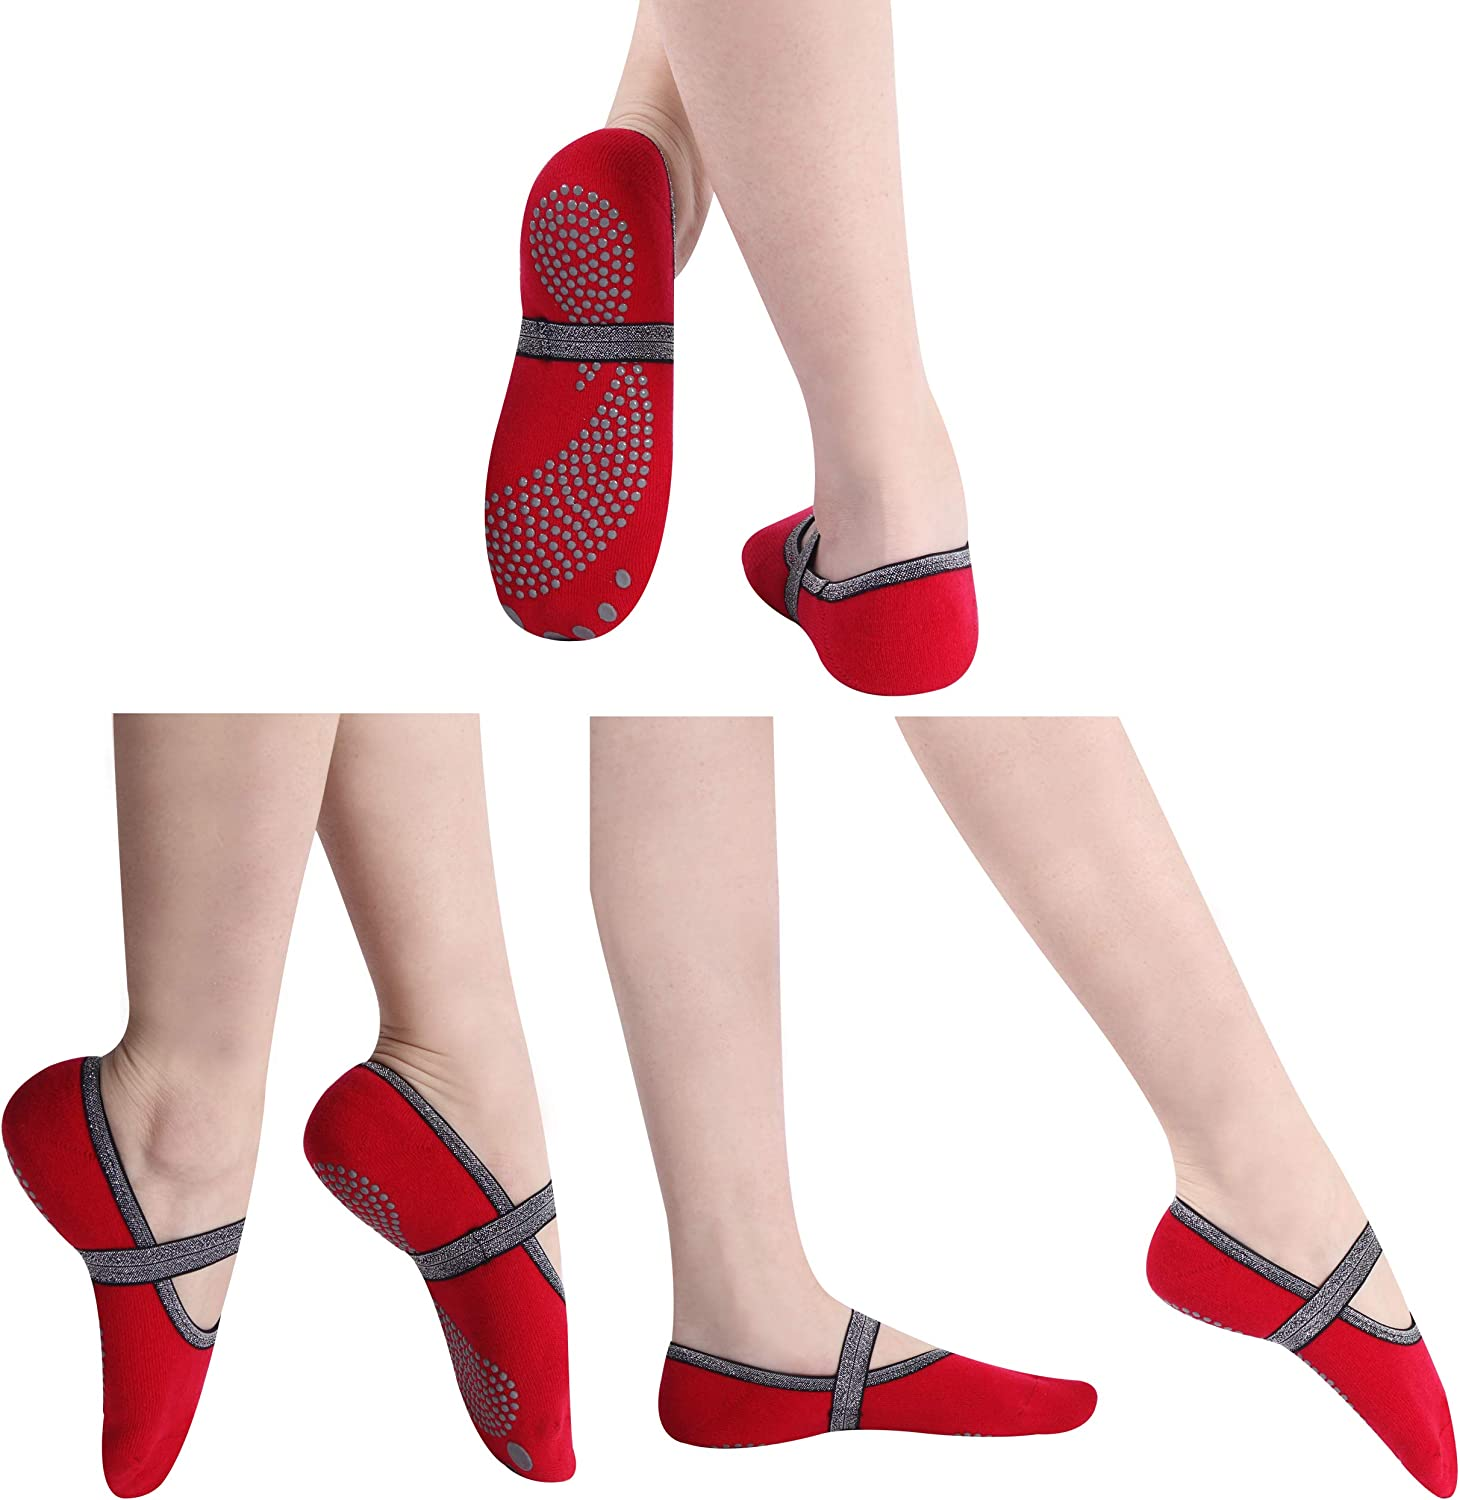 SuMade Sale SALE% OFF Yoga Silicone Socks with Straps Women Sales results No. 1 Exercise Sock Home